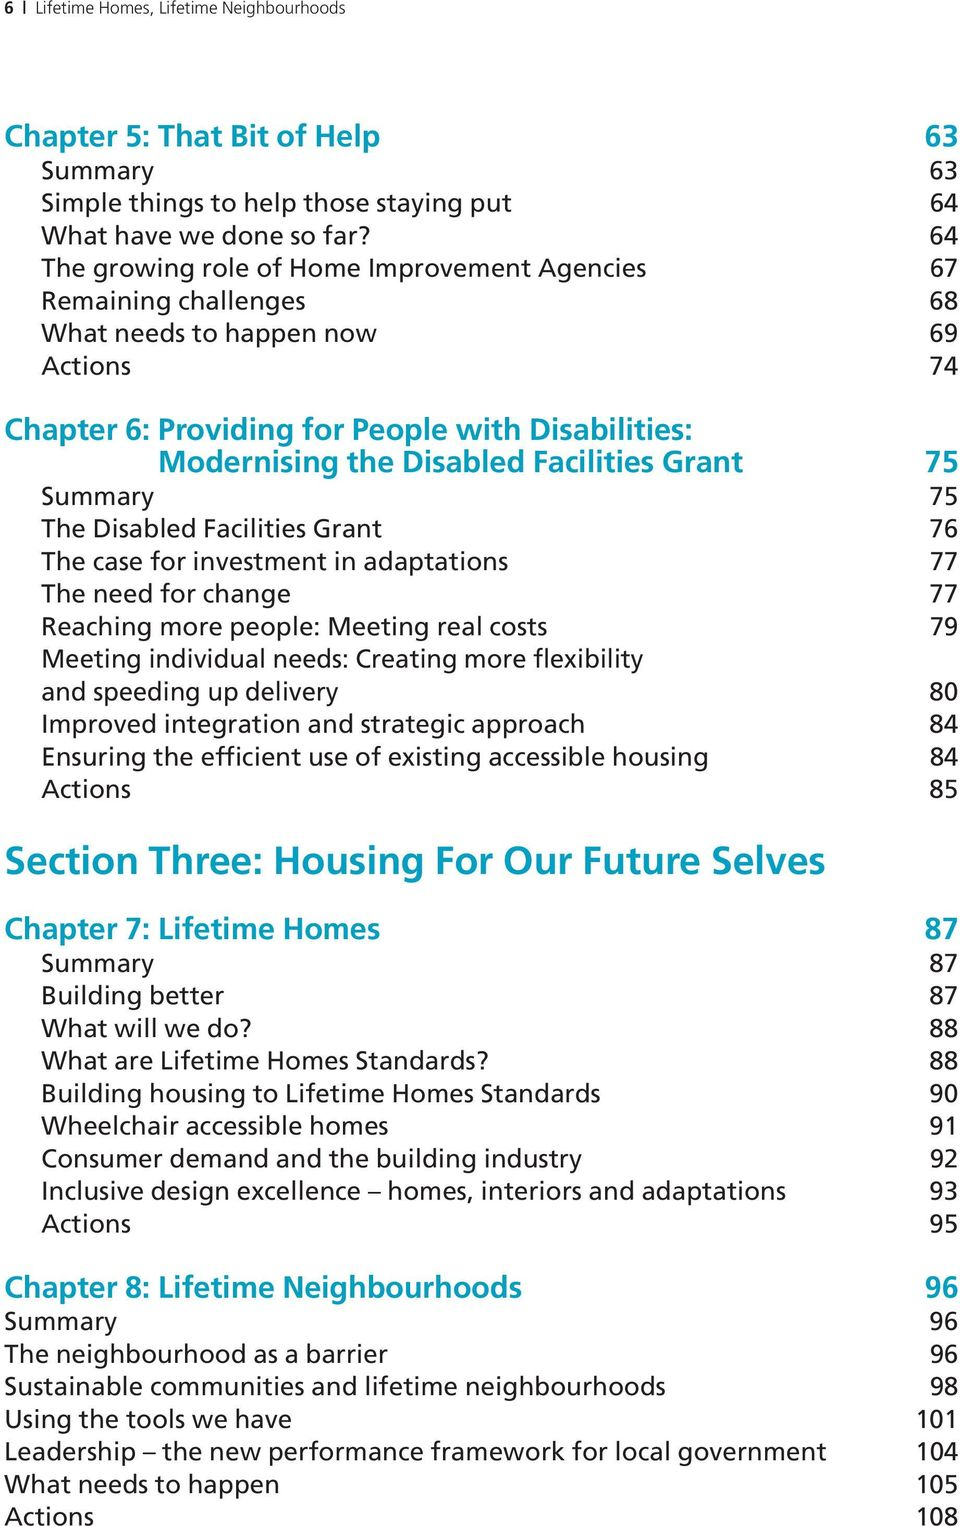 Facilities Grant 75 Summary 75 The Disabled Facilities Grant 76 The case for investment in adaptations 77 The need for change 77 Reaching more people: Meeting real costs 79 Meeting individual needs: